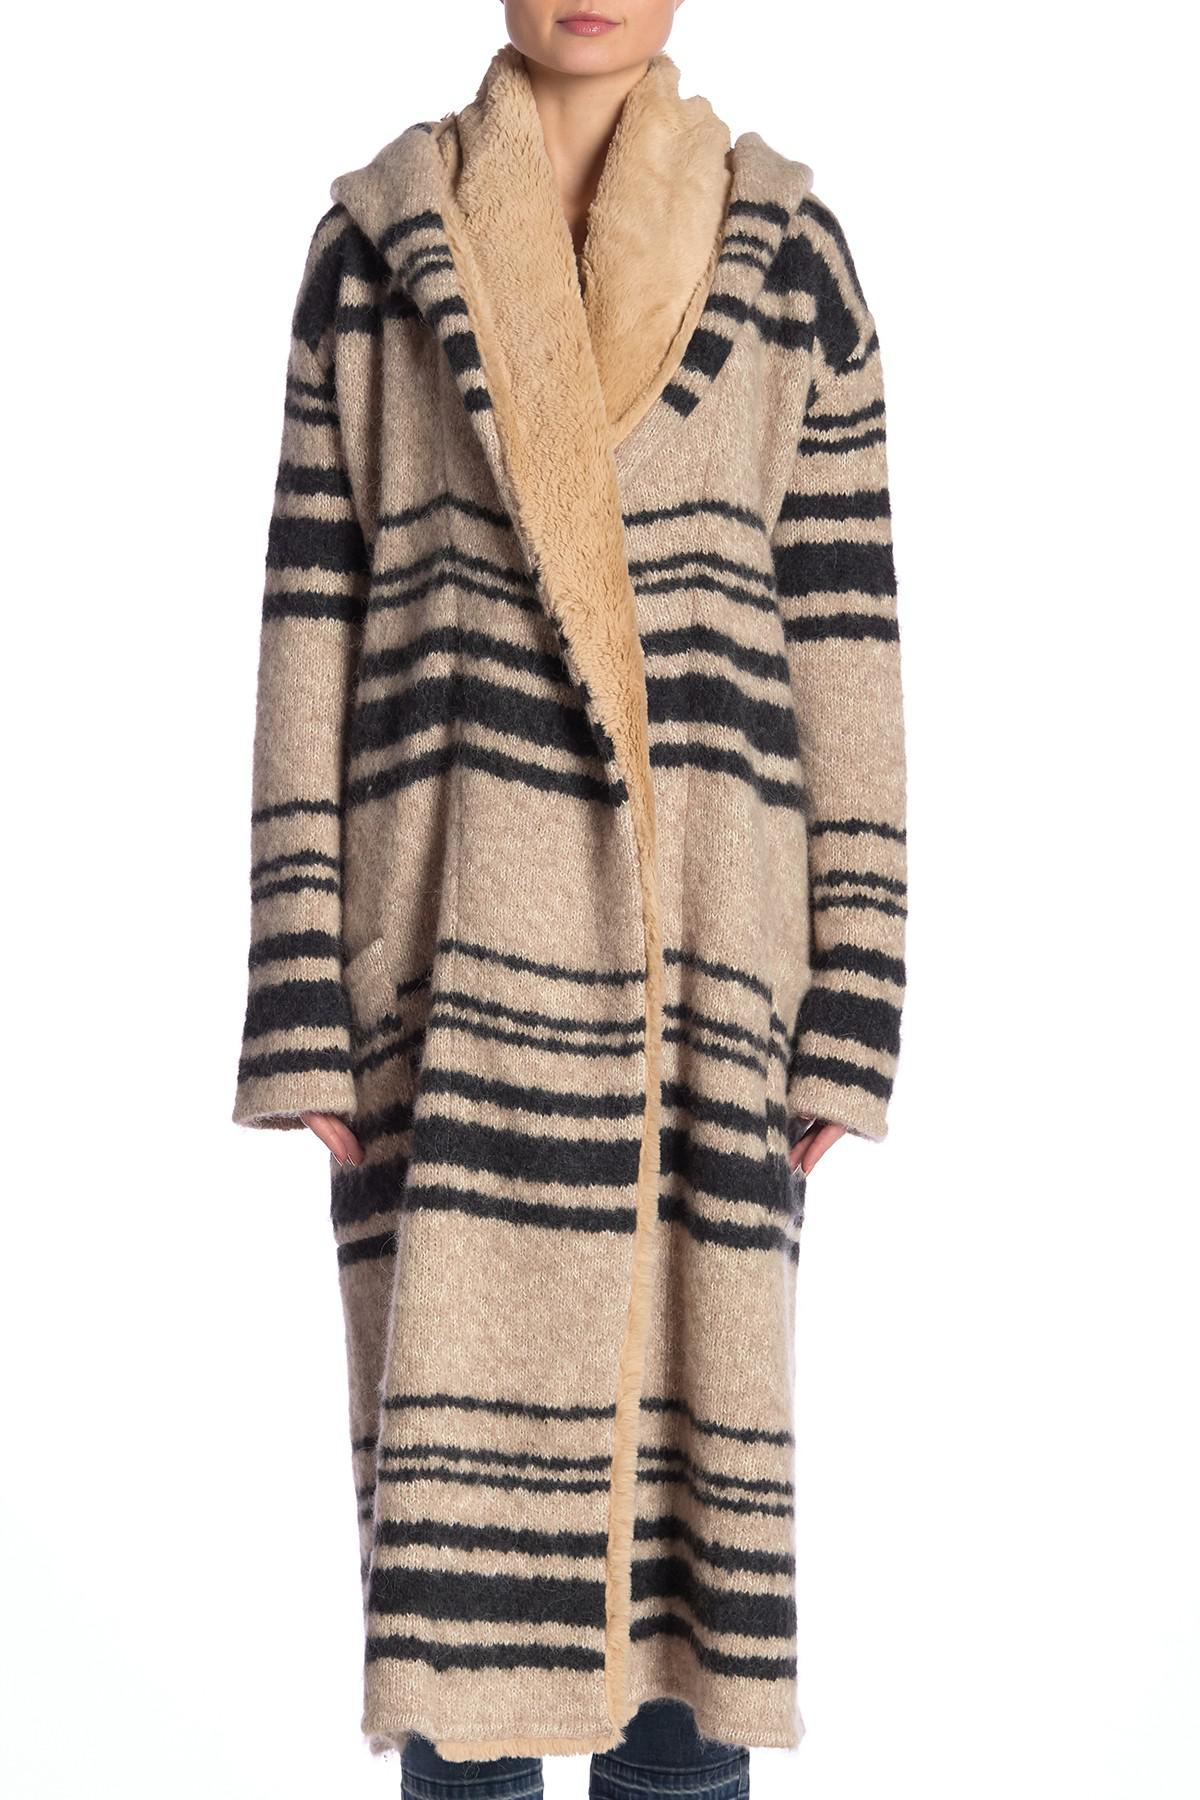 5dbf2f17f Free People Hooded Sweater Coat